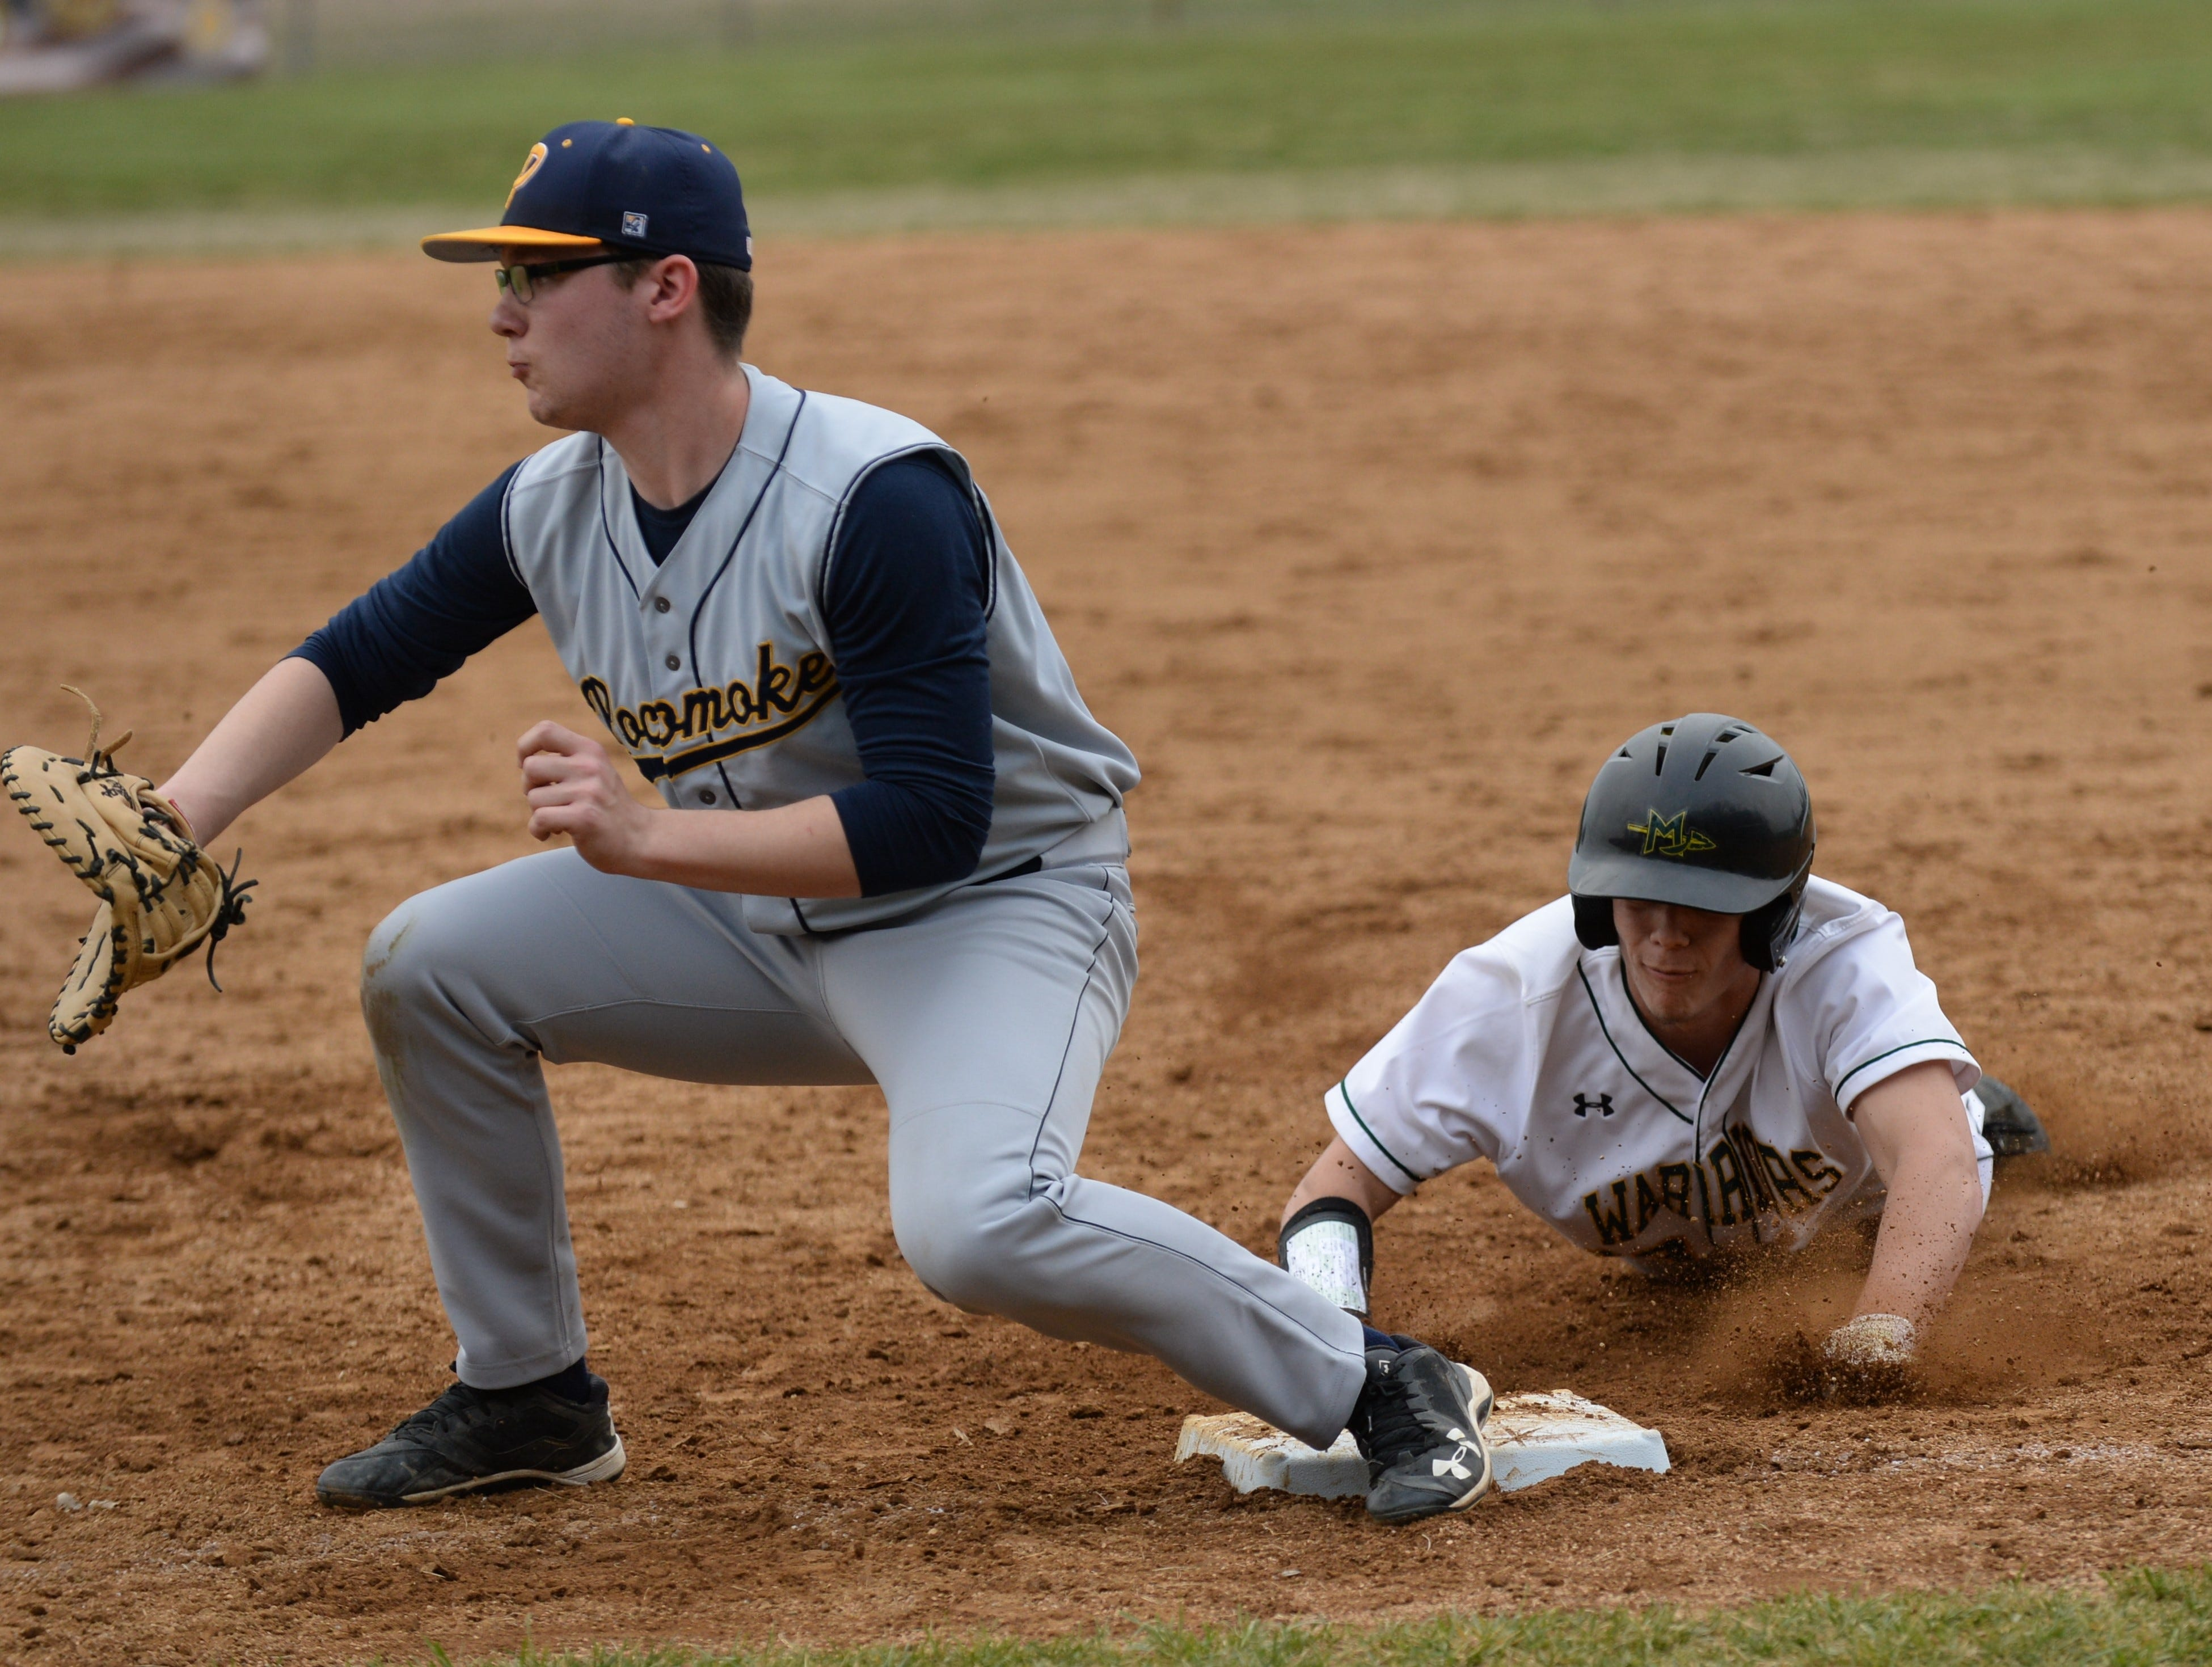 A Mardela player slides into first base after trying to steal against Pocomoke on Monday, March 25, 2019.